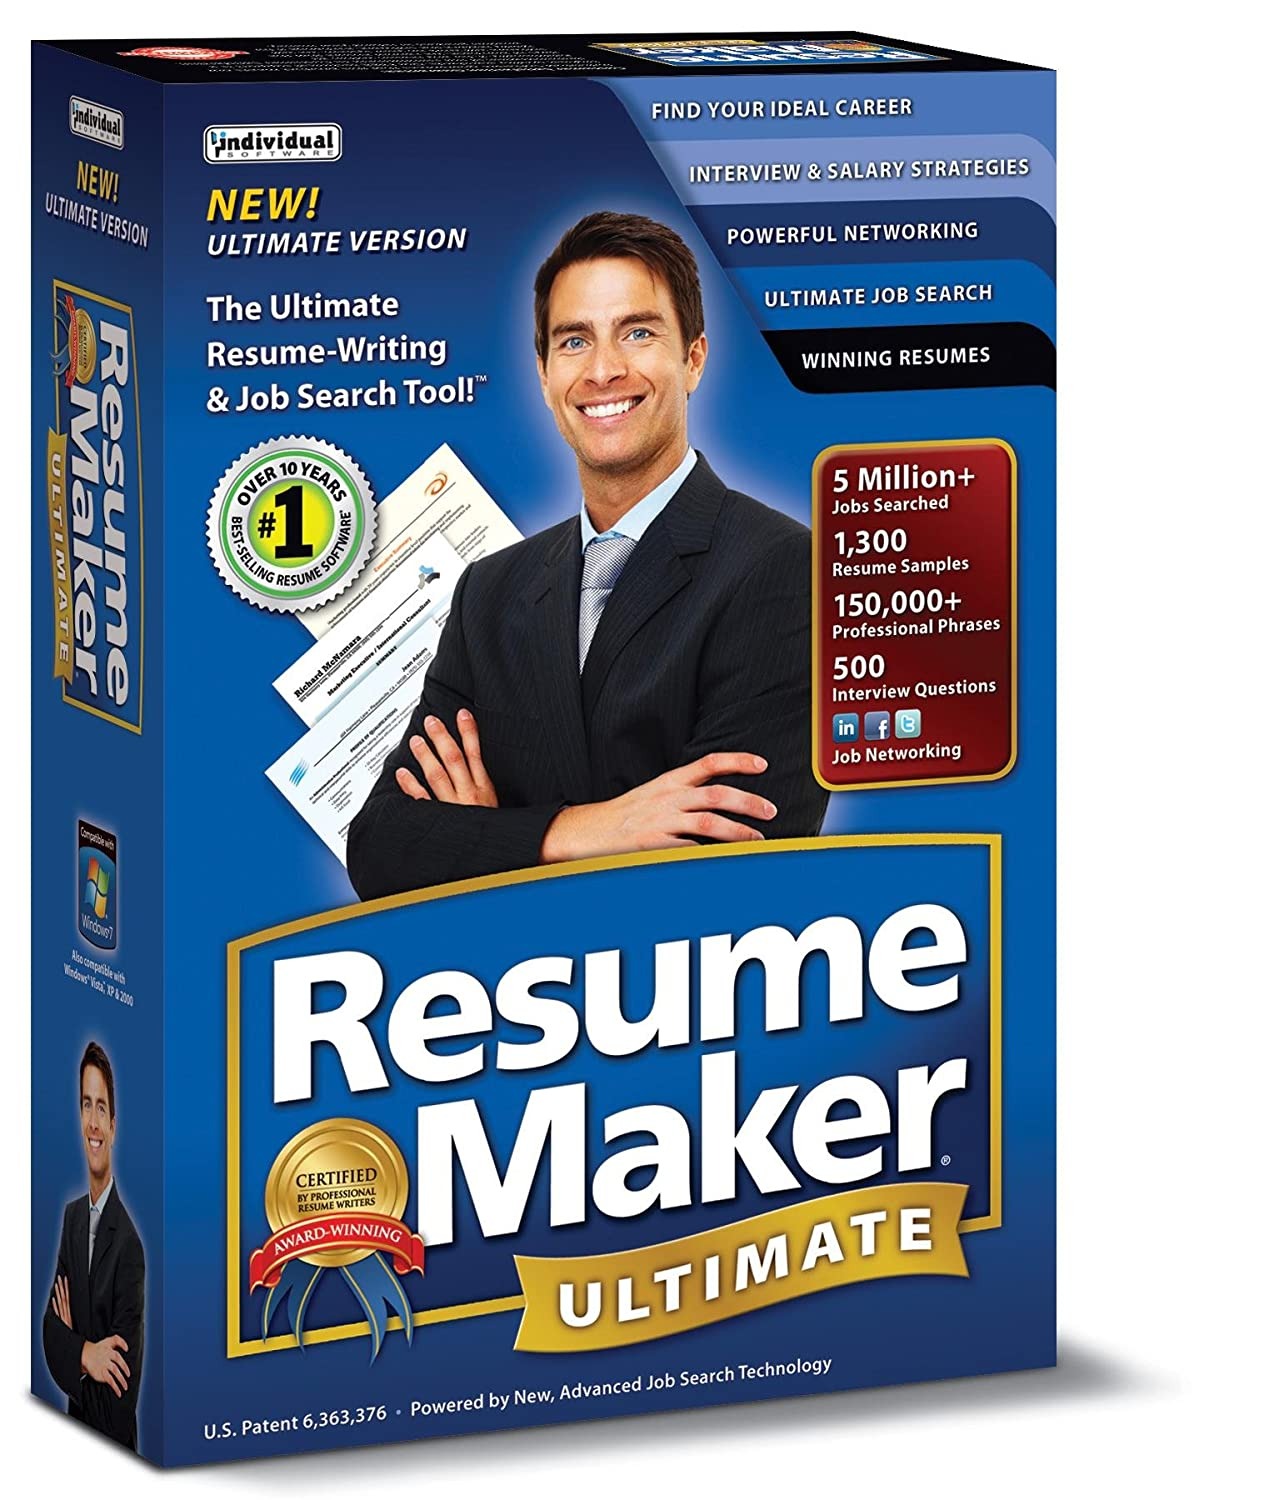 amazoncom resumemaker ultimate 5 - Individual Software Resume Maker